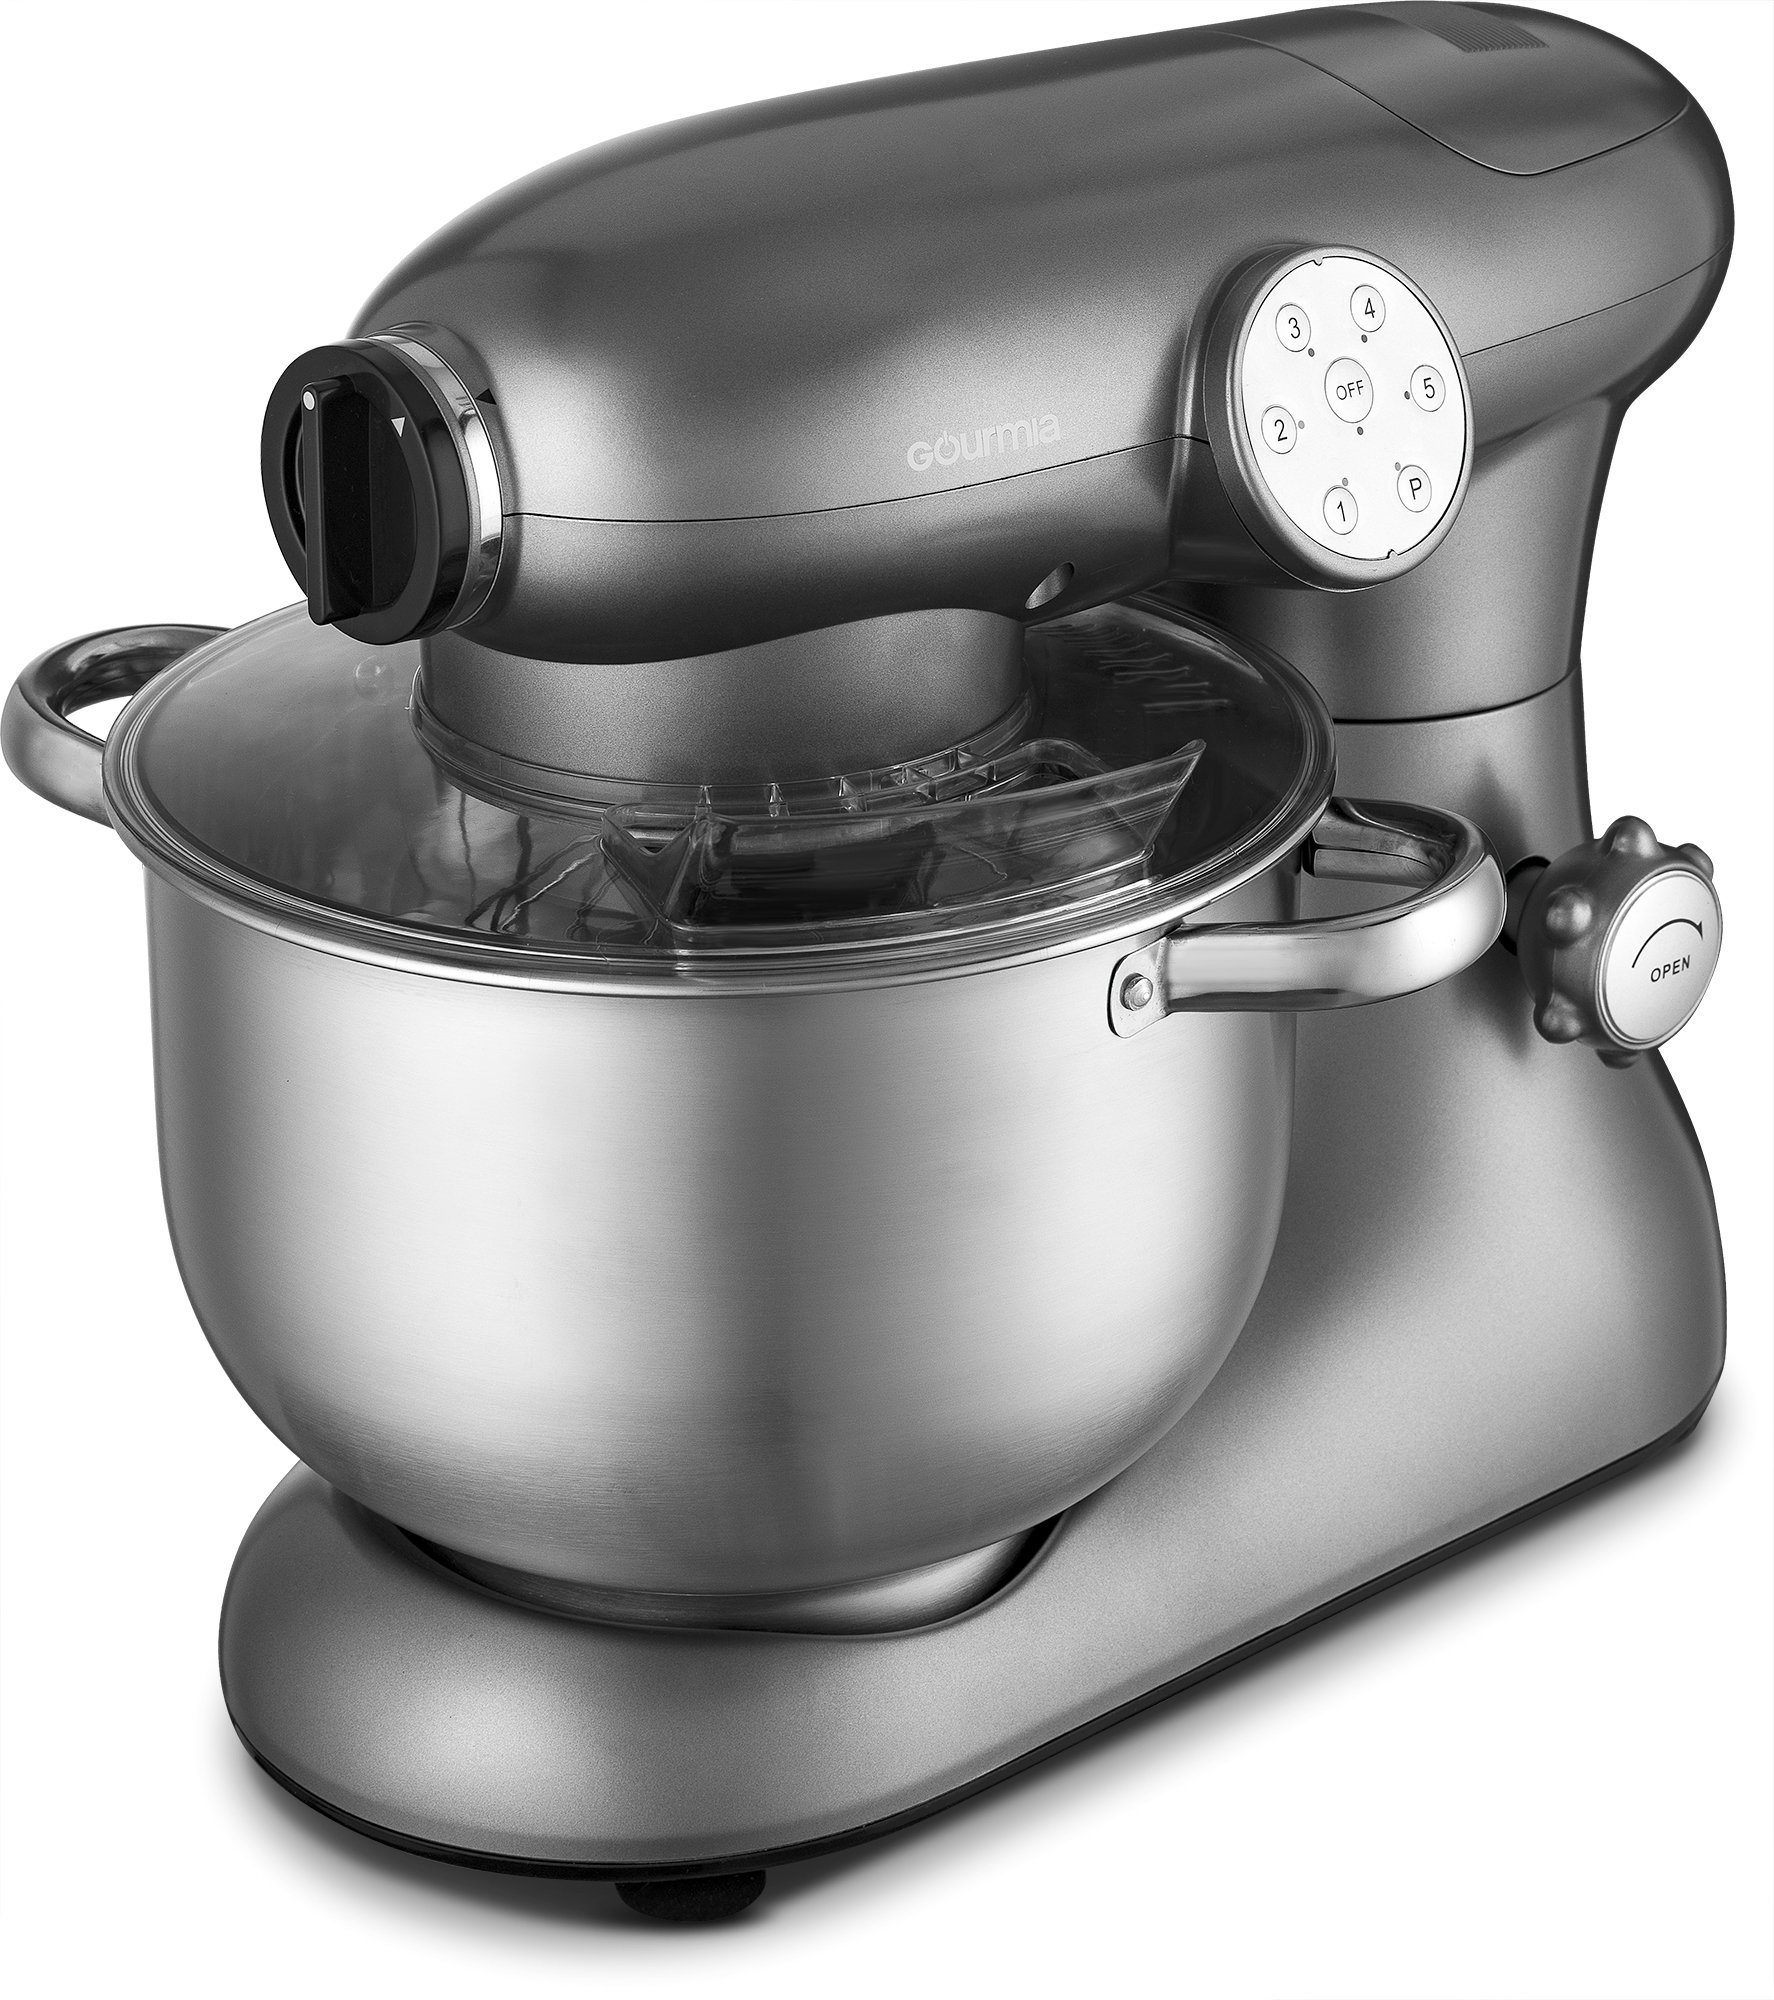 Gourmia EP700 7-Quart 6 Speed Stand Mixer, Planetery Action with Stainless Steel Bowl by Gourmia (Image #3)